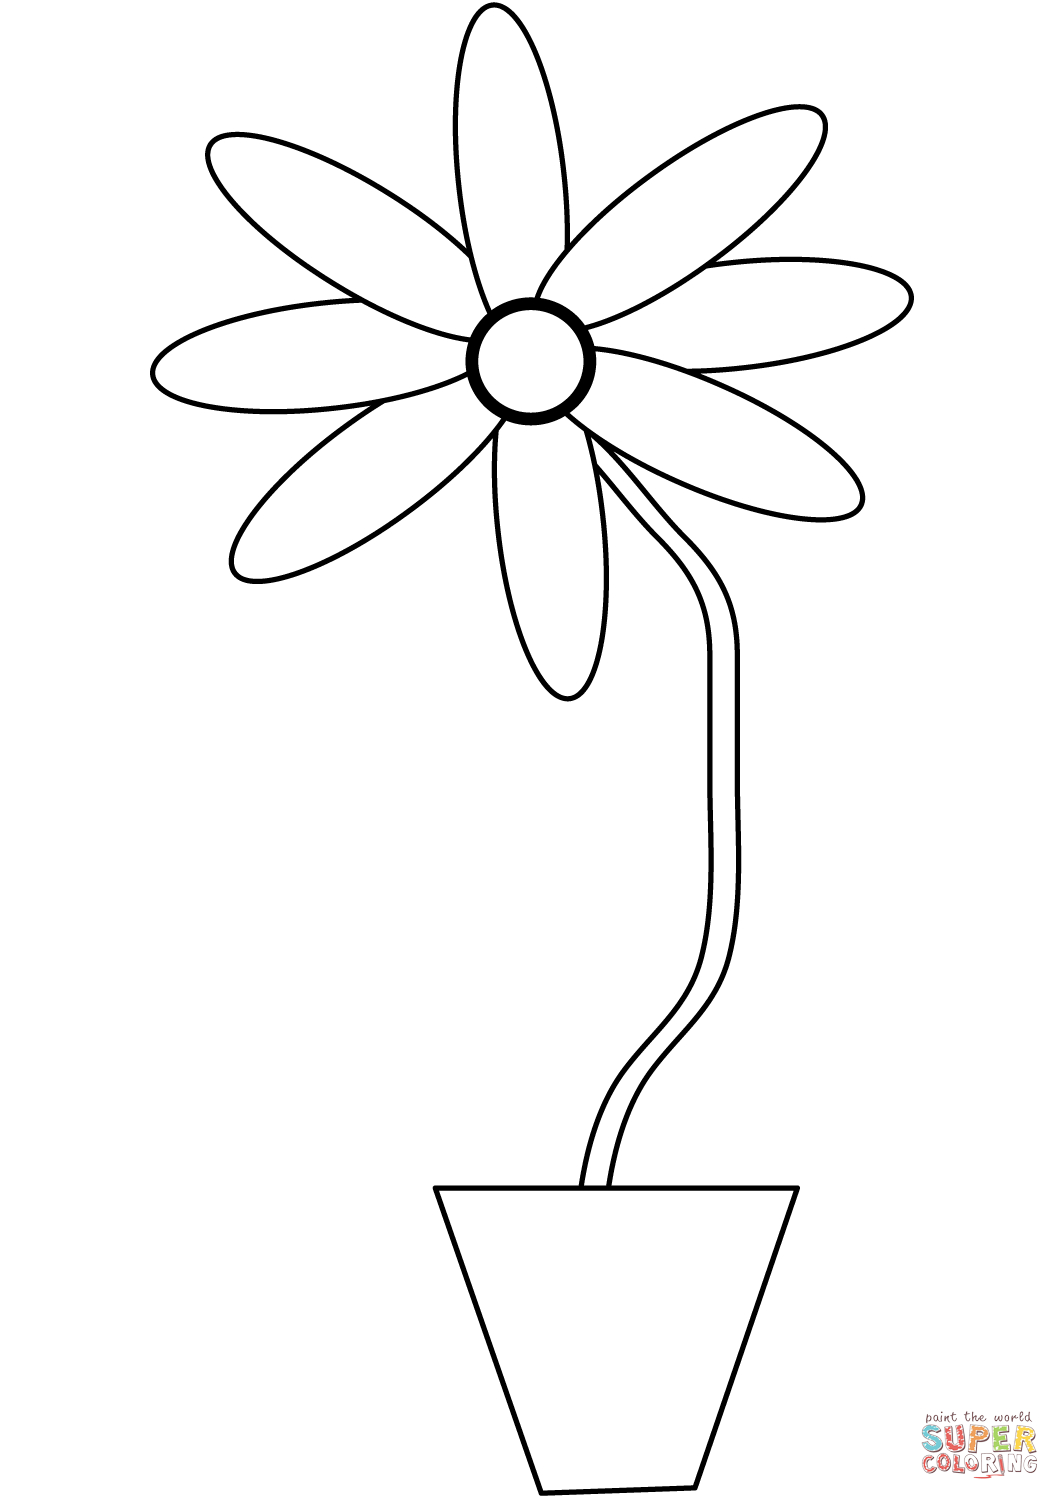 graphic regarding Printable Flower Pot identify Flower Pot Coloring Website page Flower Within A Pot Coloring Site Absolutely free